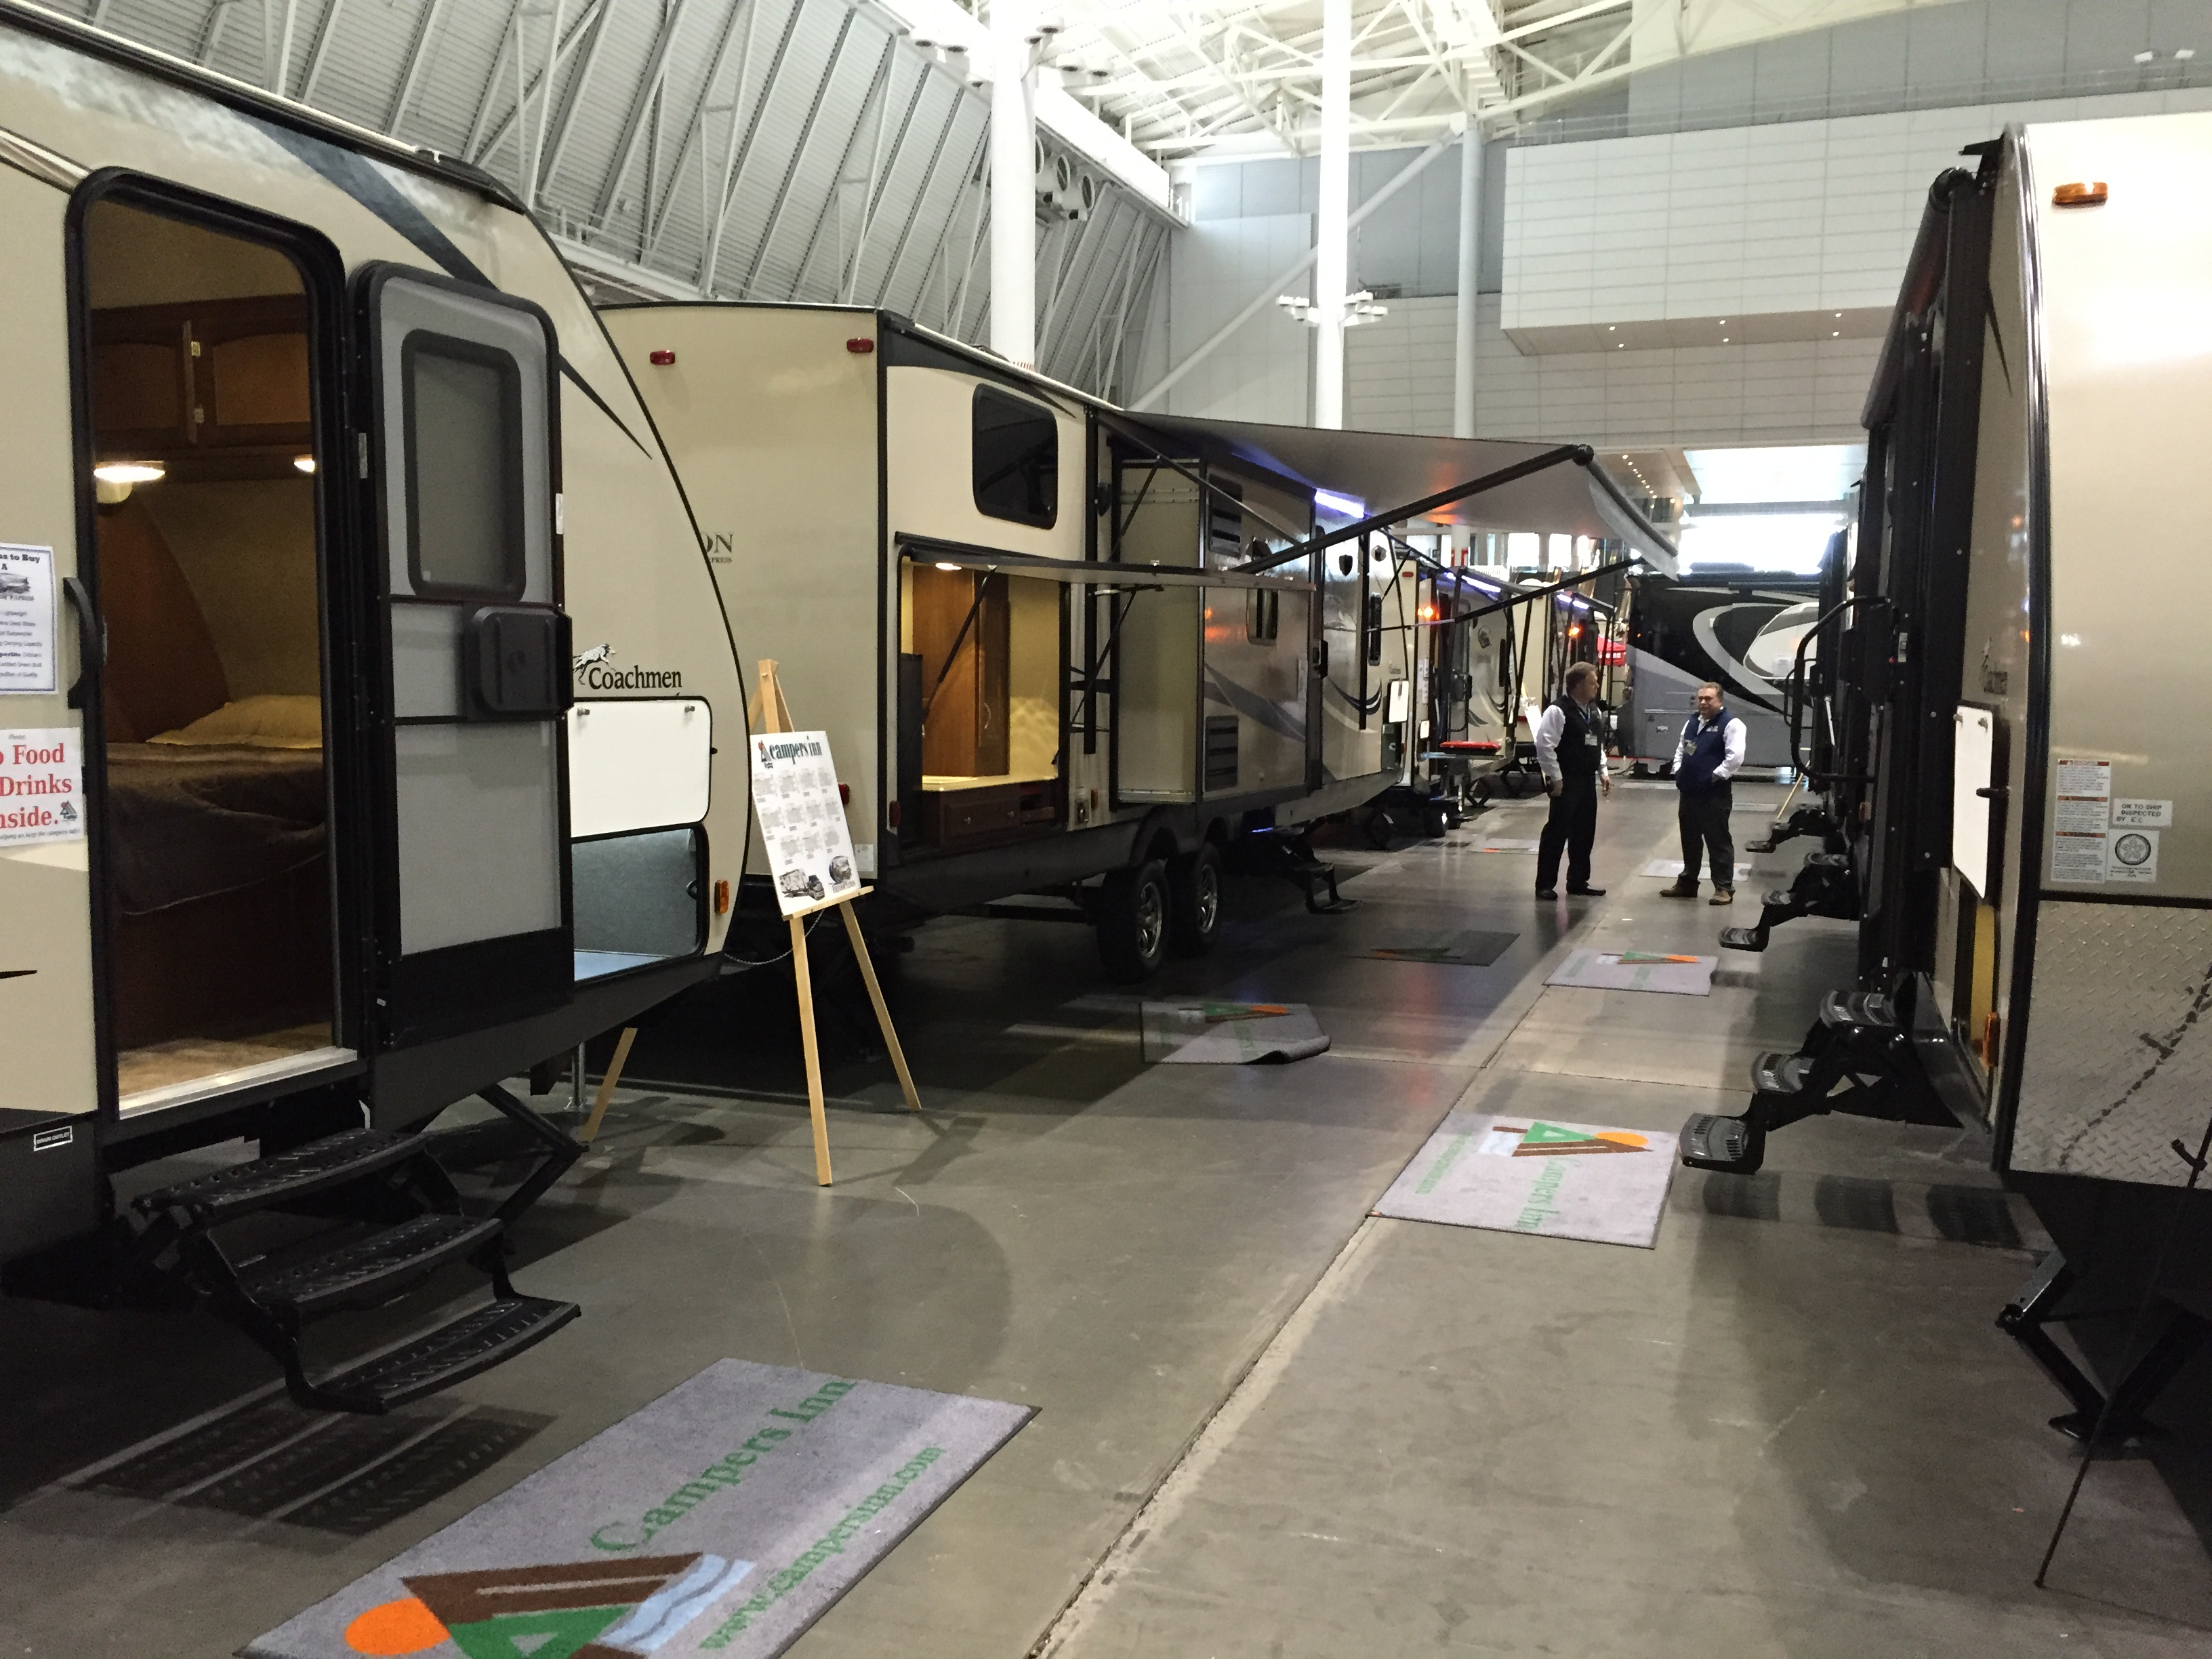 New England RVers can find incredible deals at the Boston RV and Camping Expo.